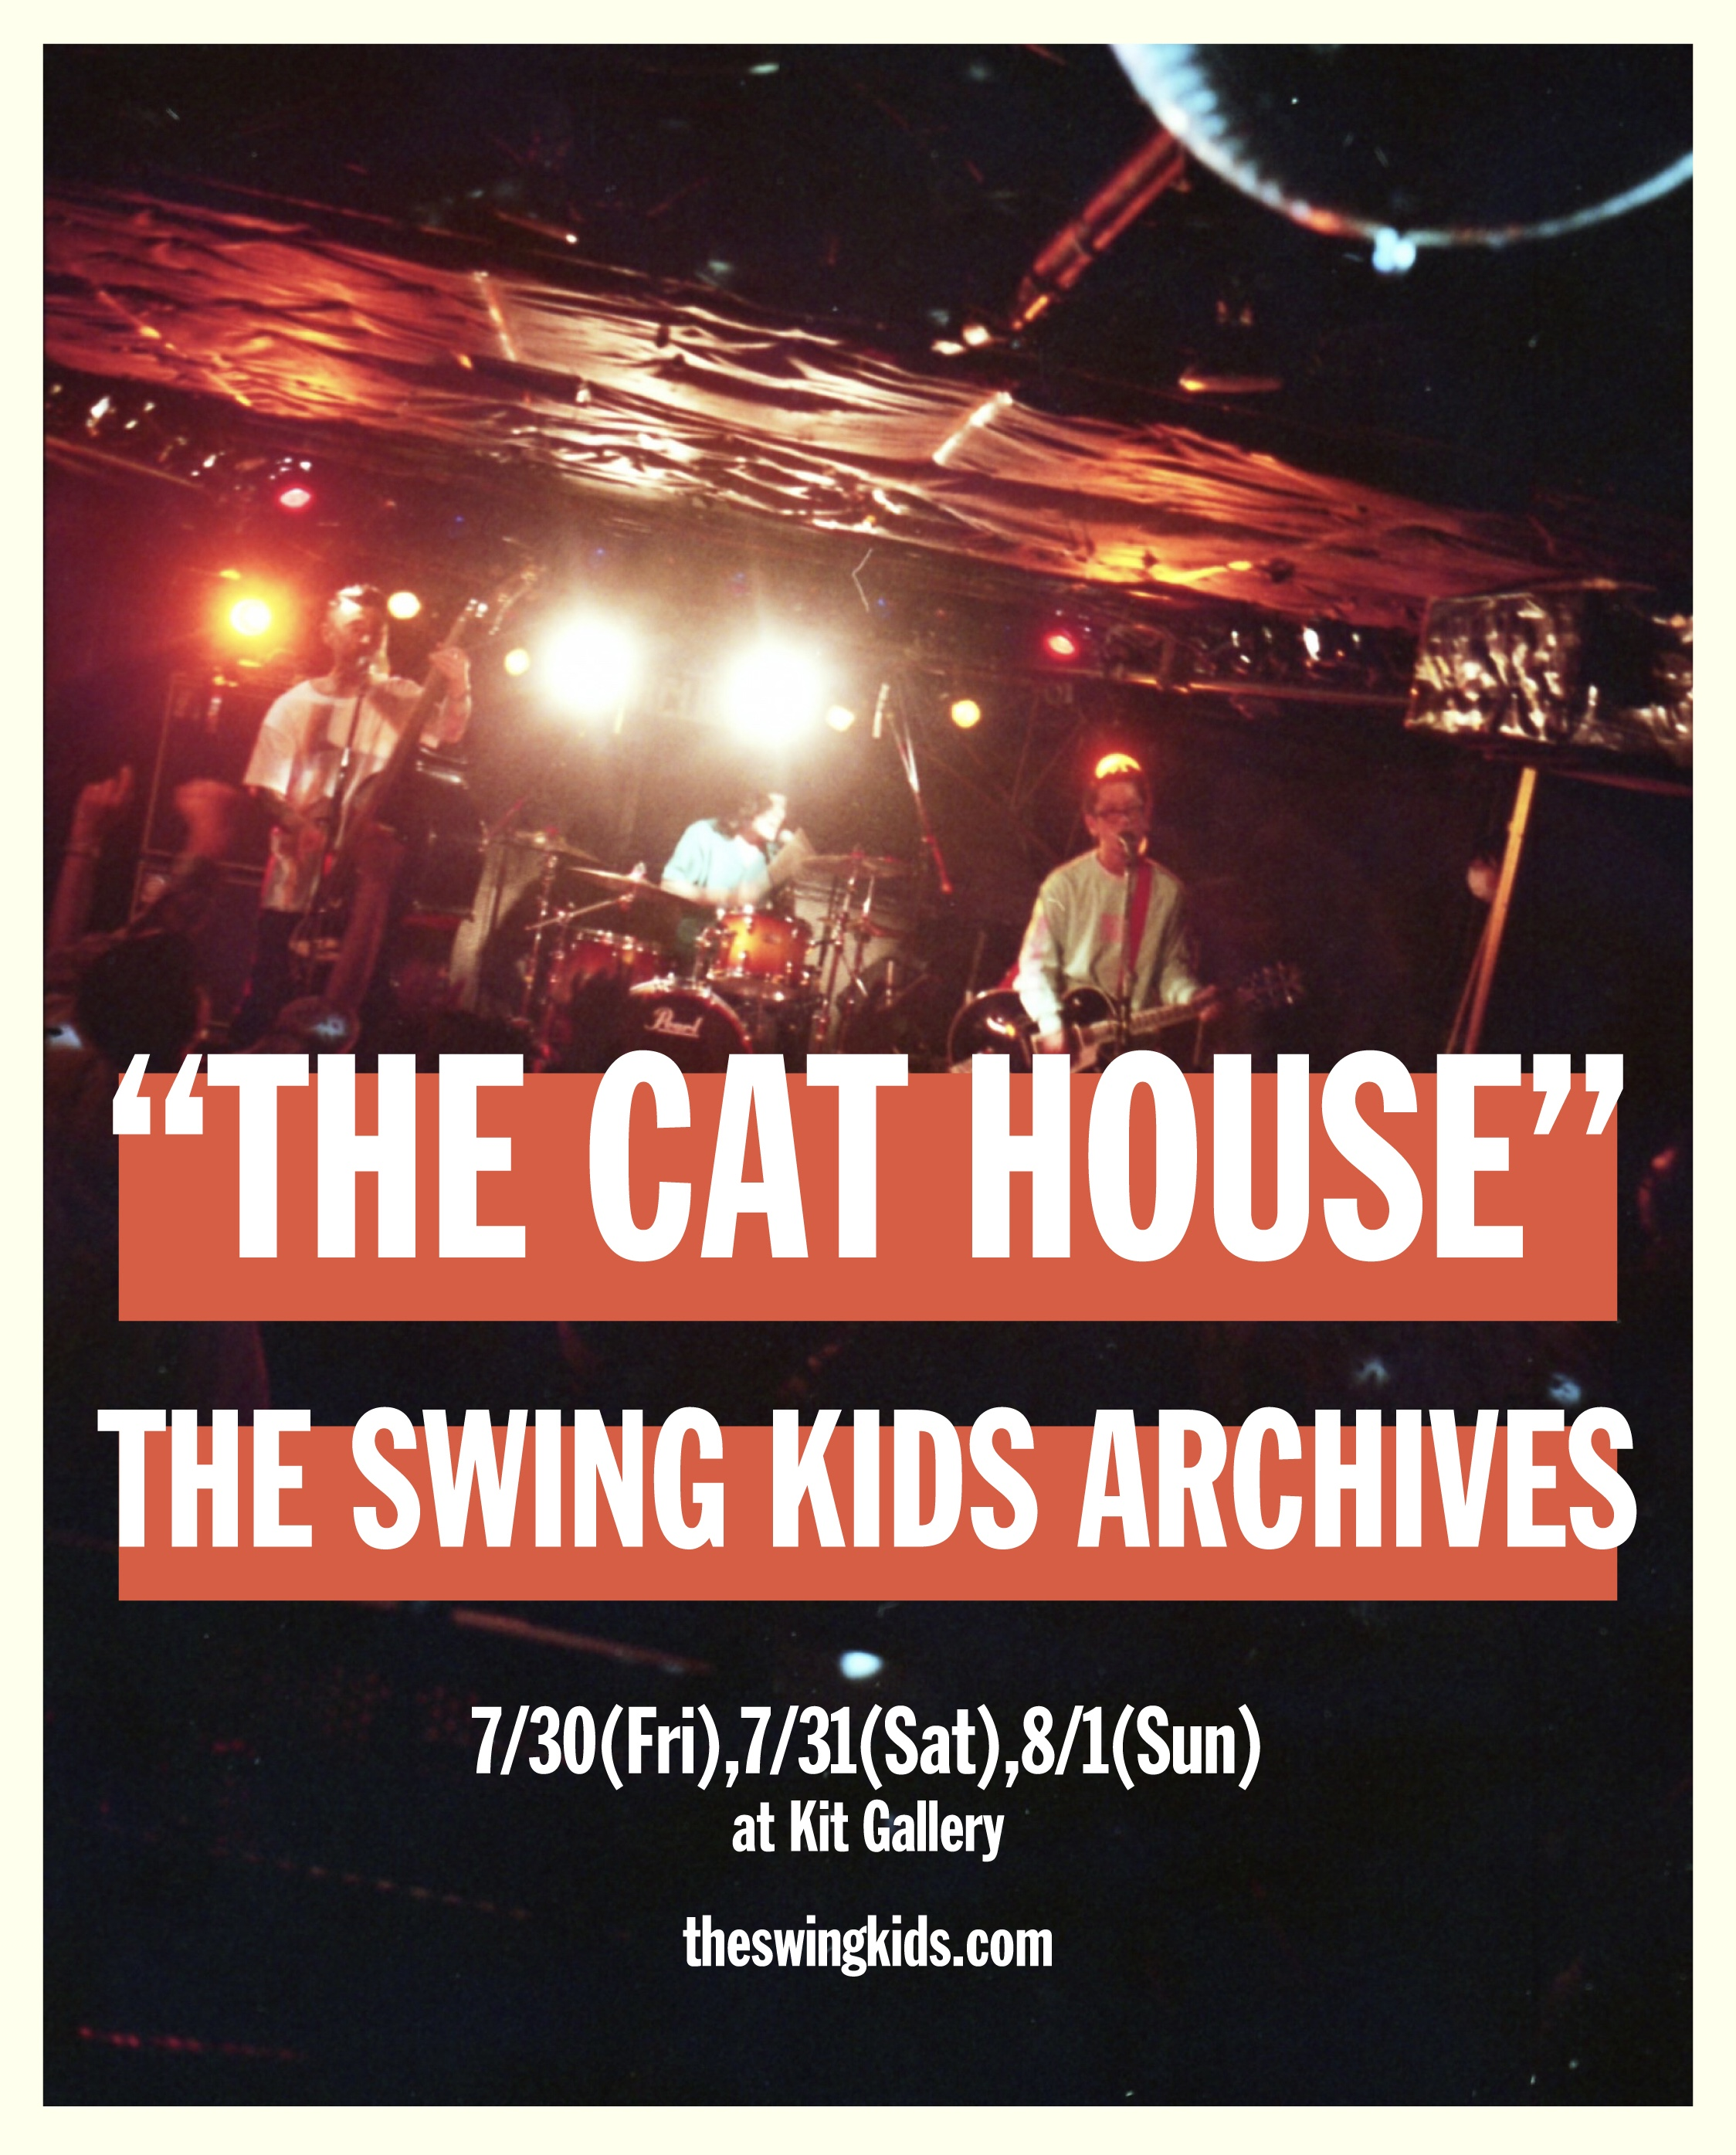 http://kit-gallery.com/schedule/files/THE%20CAT%20HOUSE1.jpg